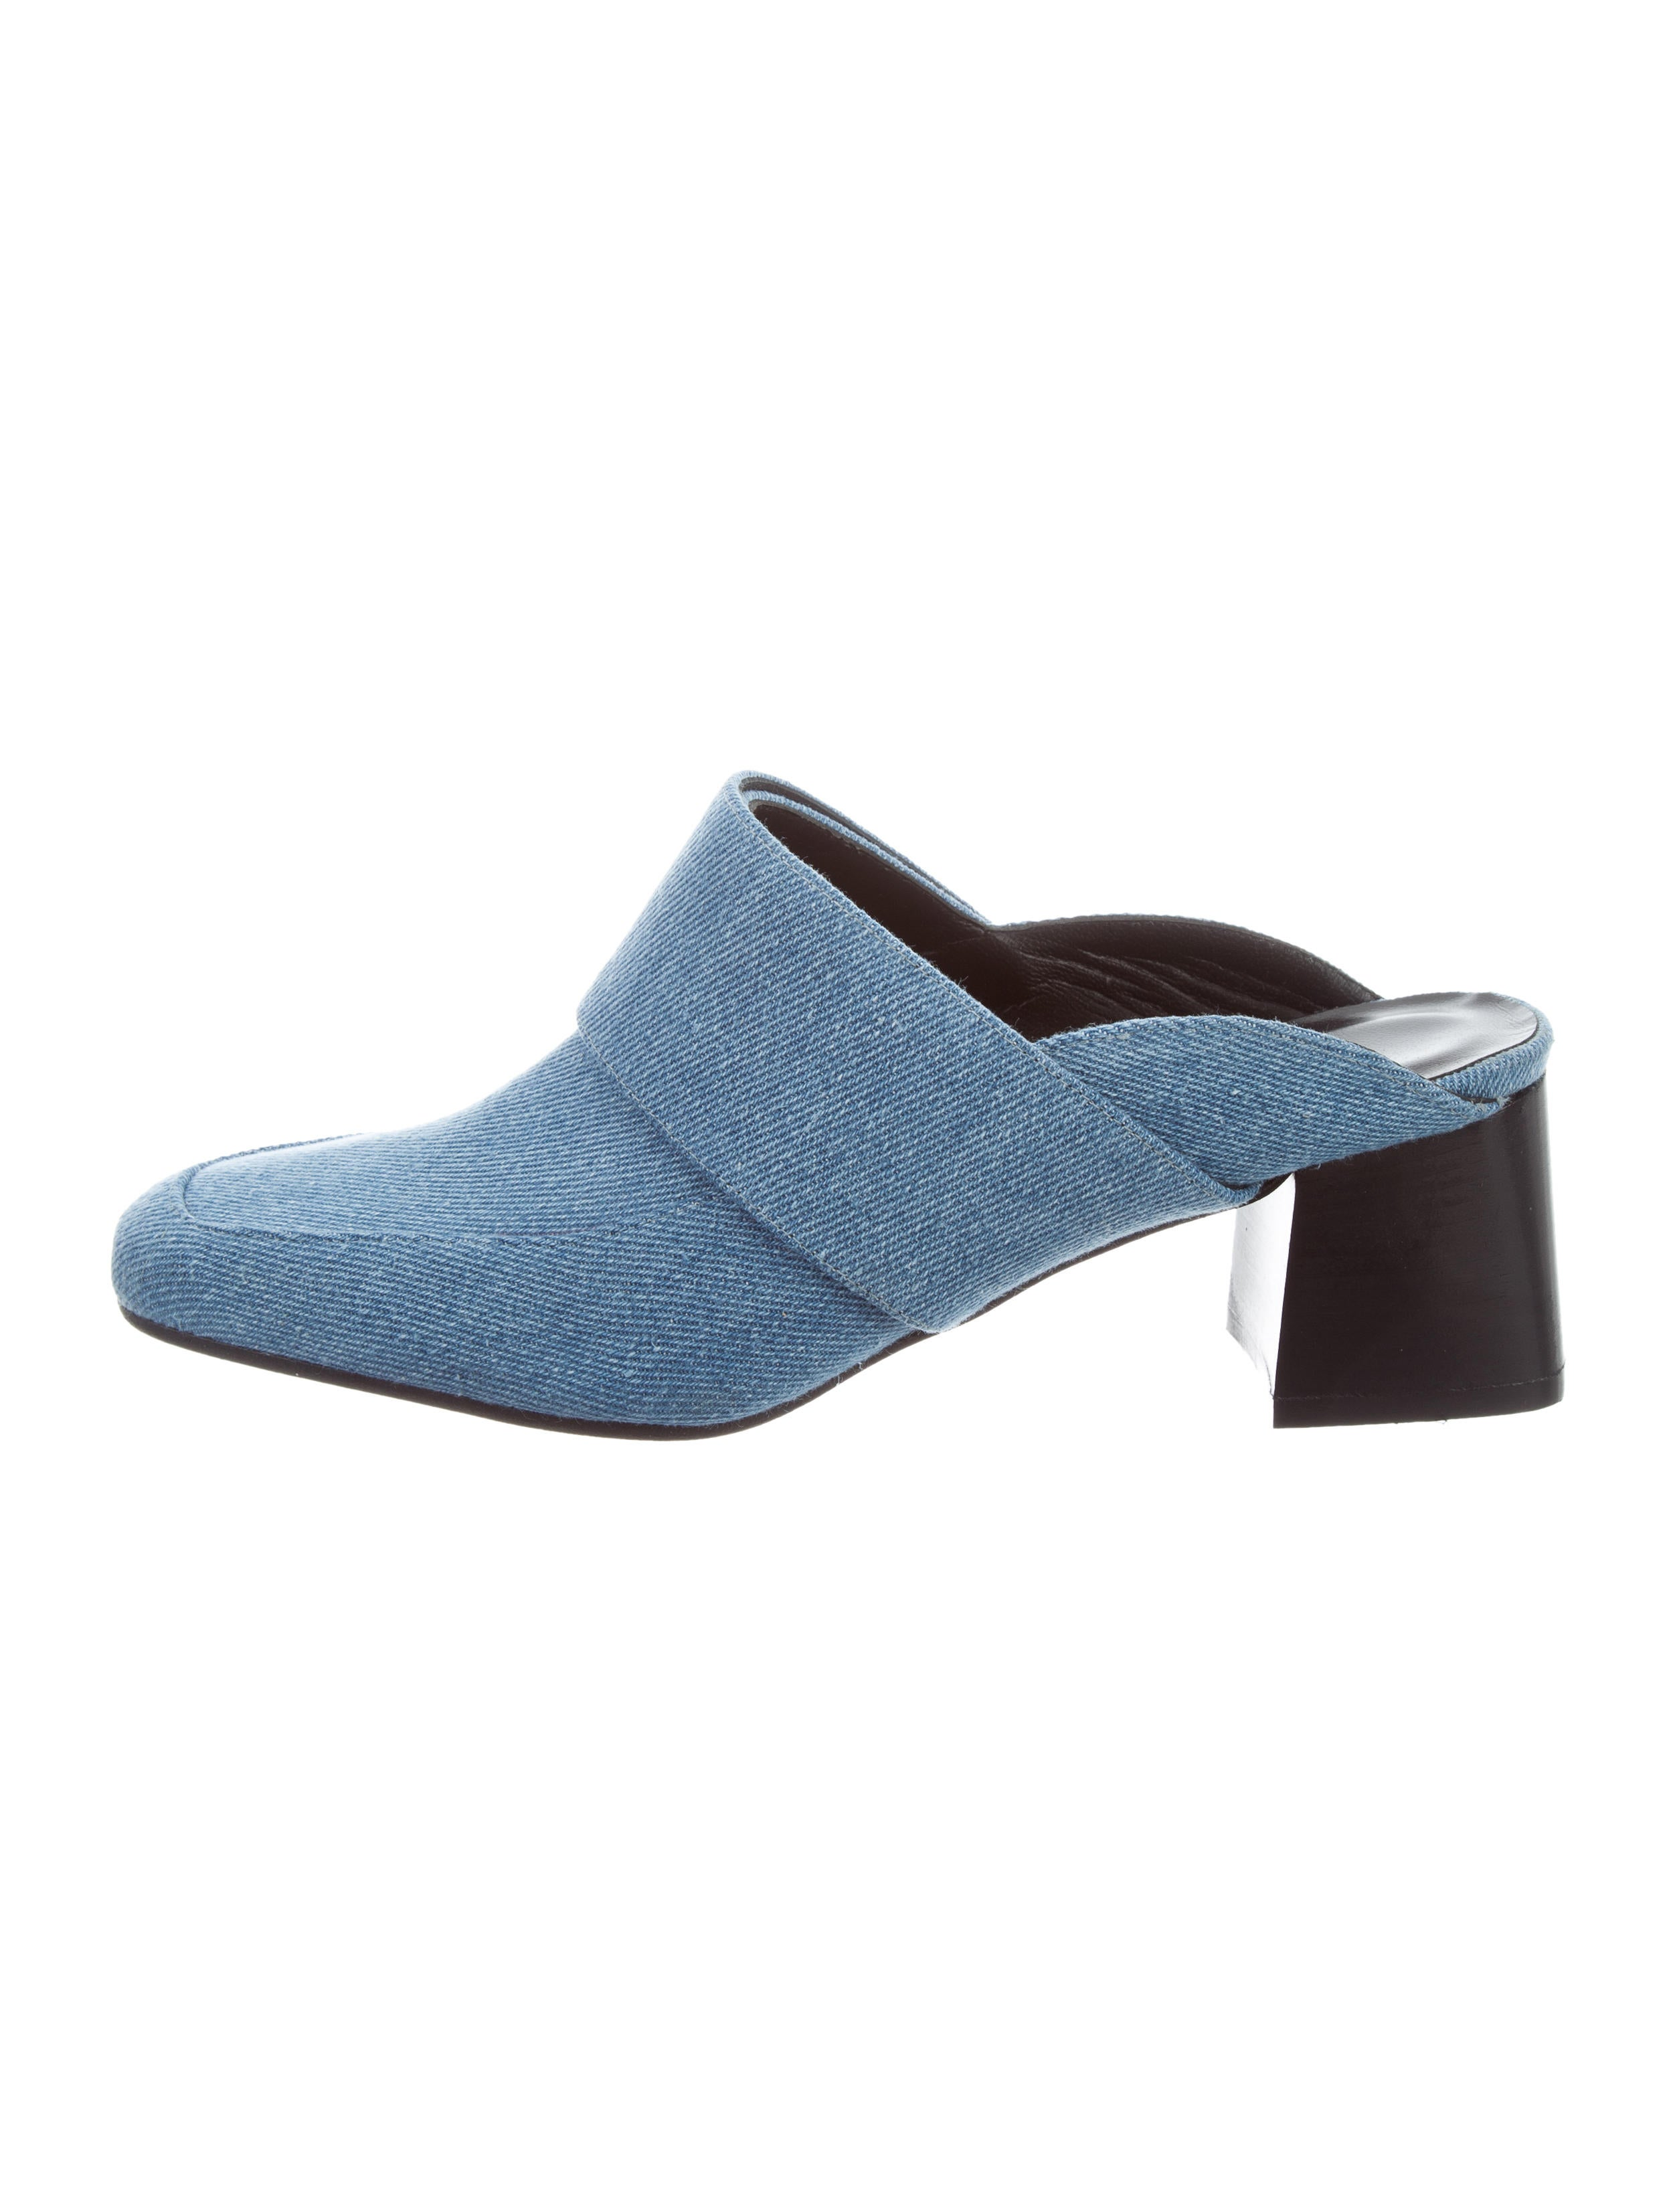 Aska Gwynne Denim Mules discount 2014 newest njuRE